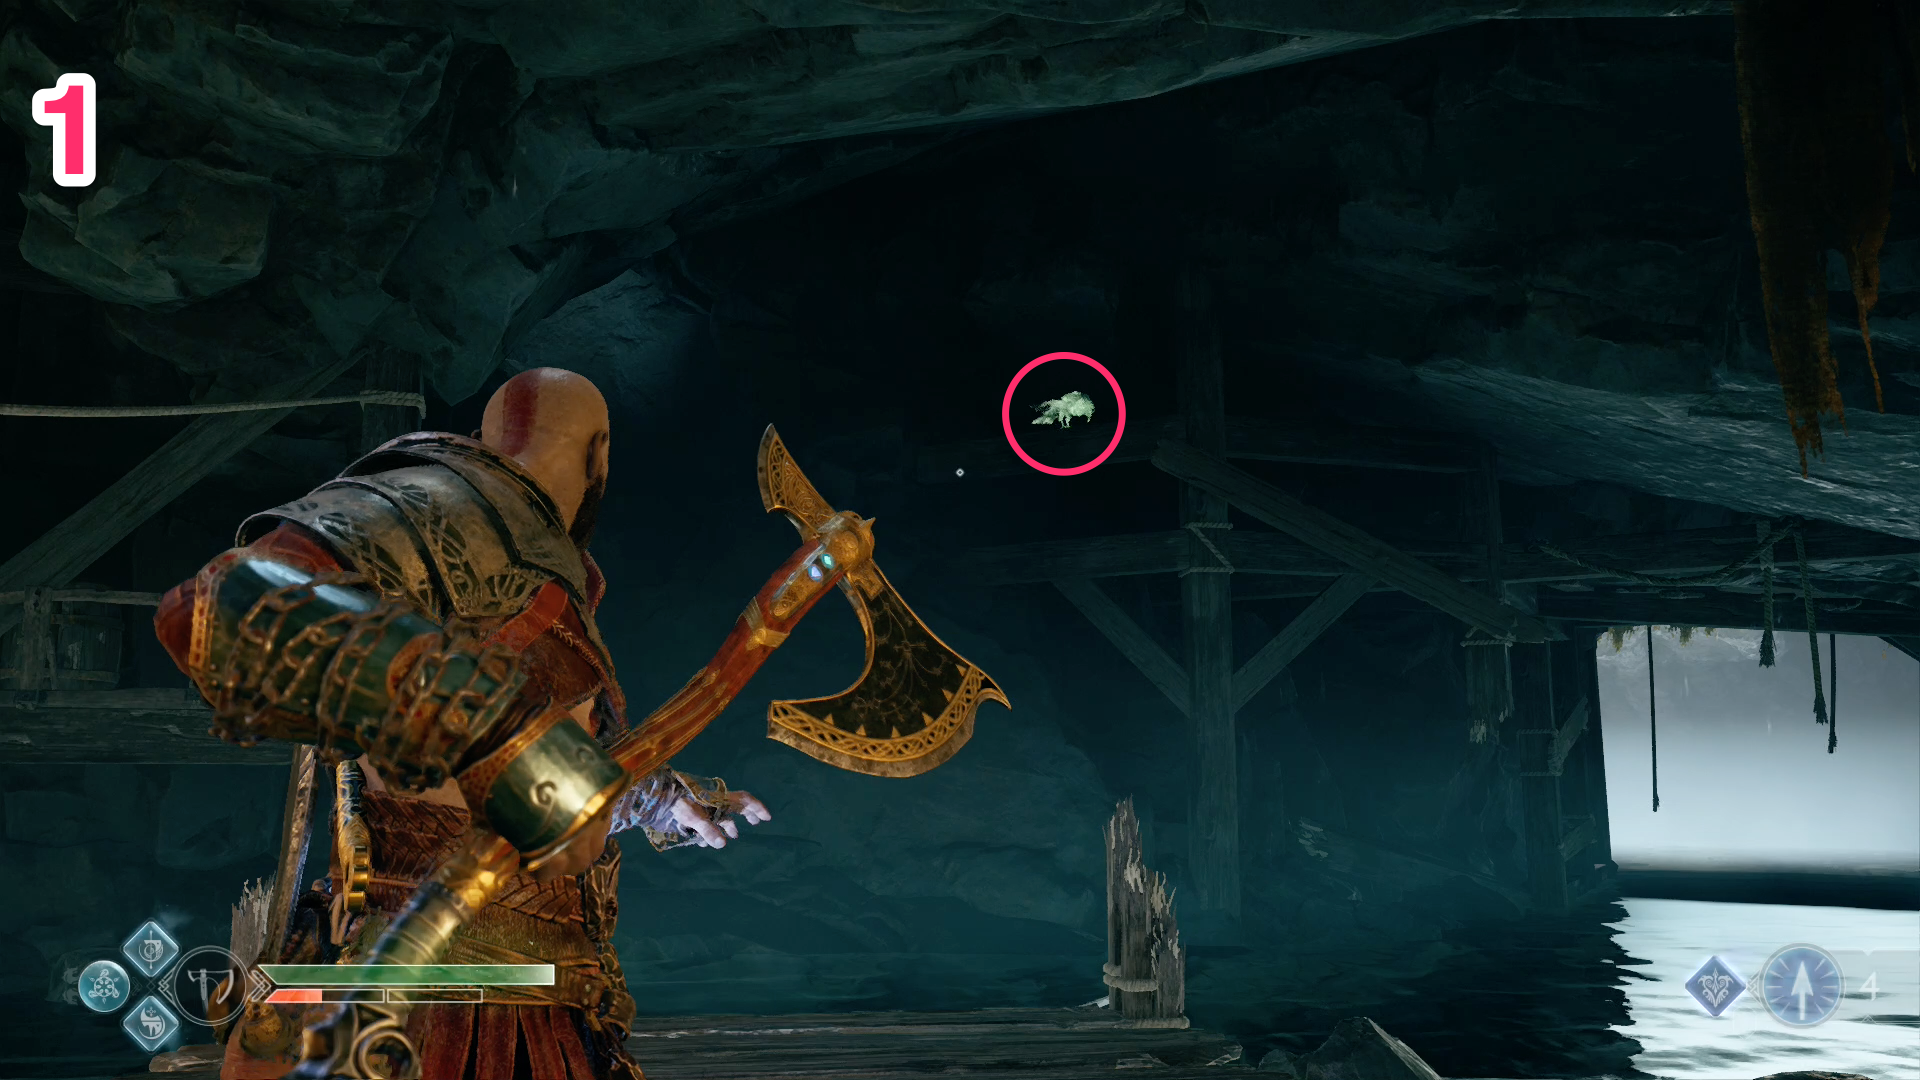 God of War Odin's raven location guide: How to find all 51